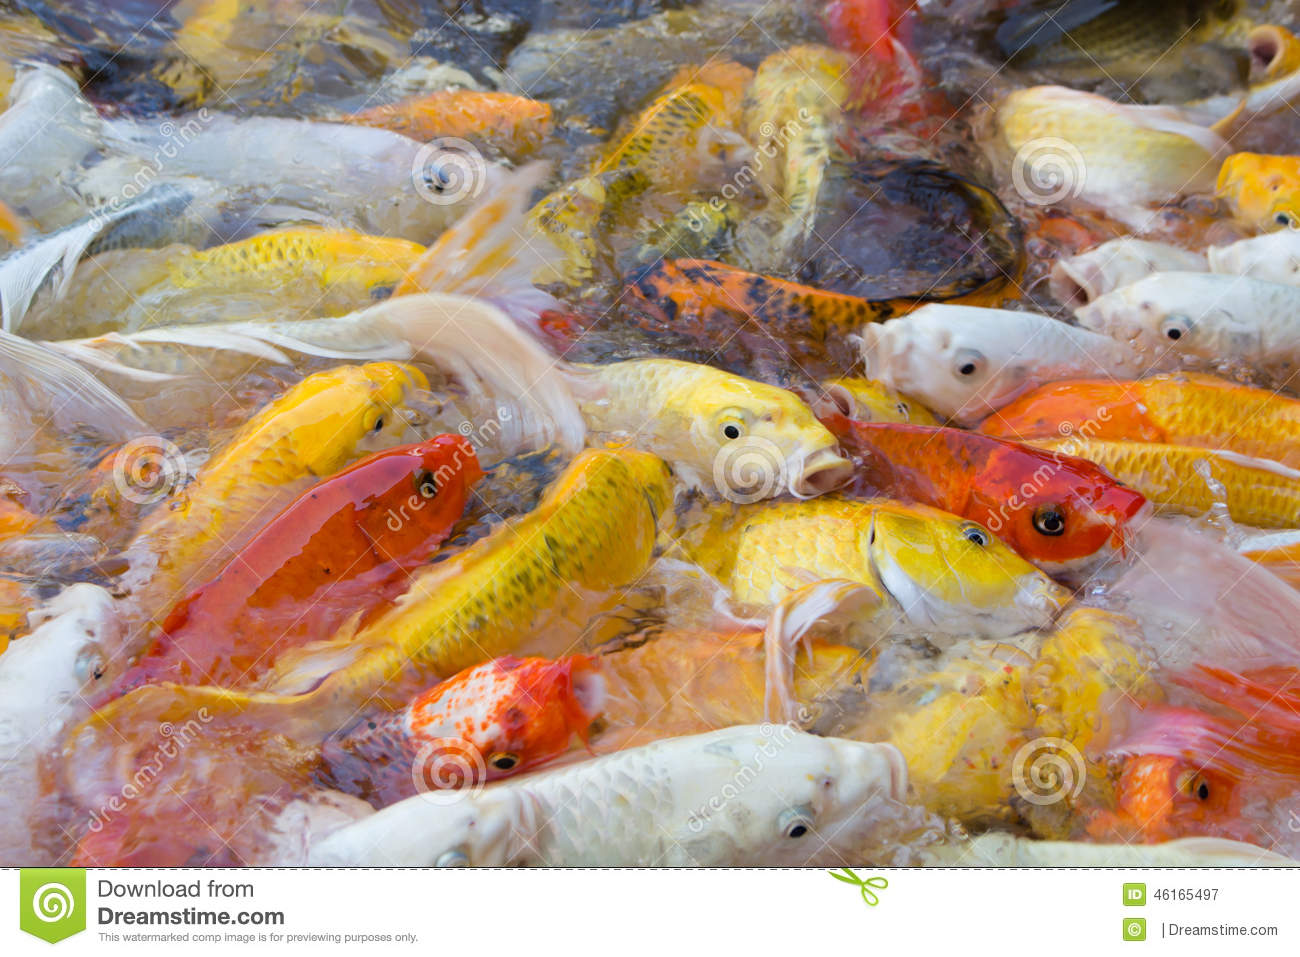 Koi fish swimming beautiful color variations natural for Dream of fish swimming